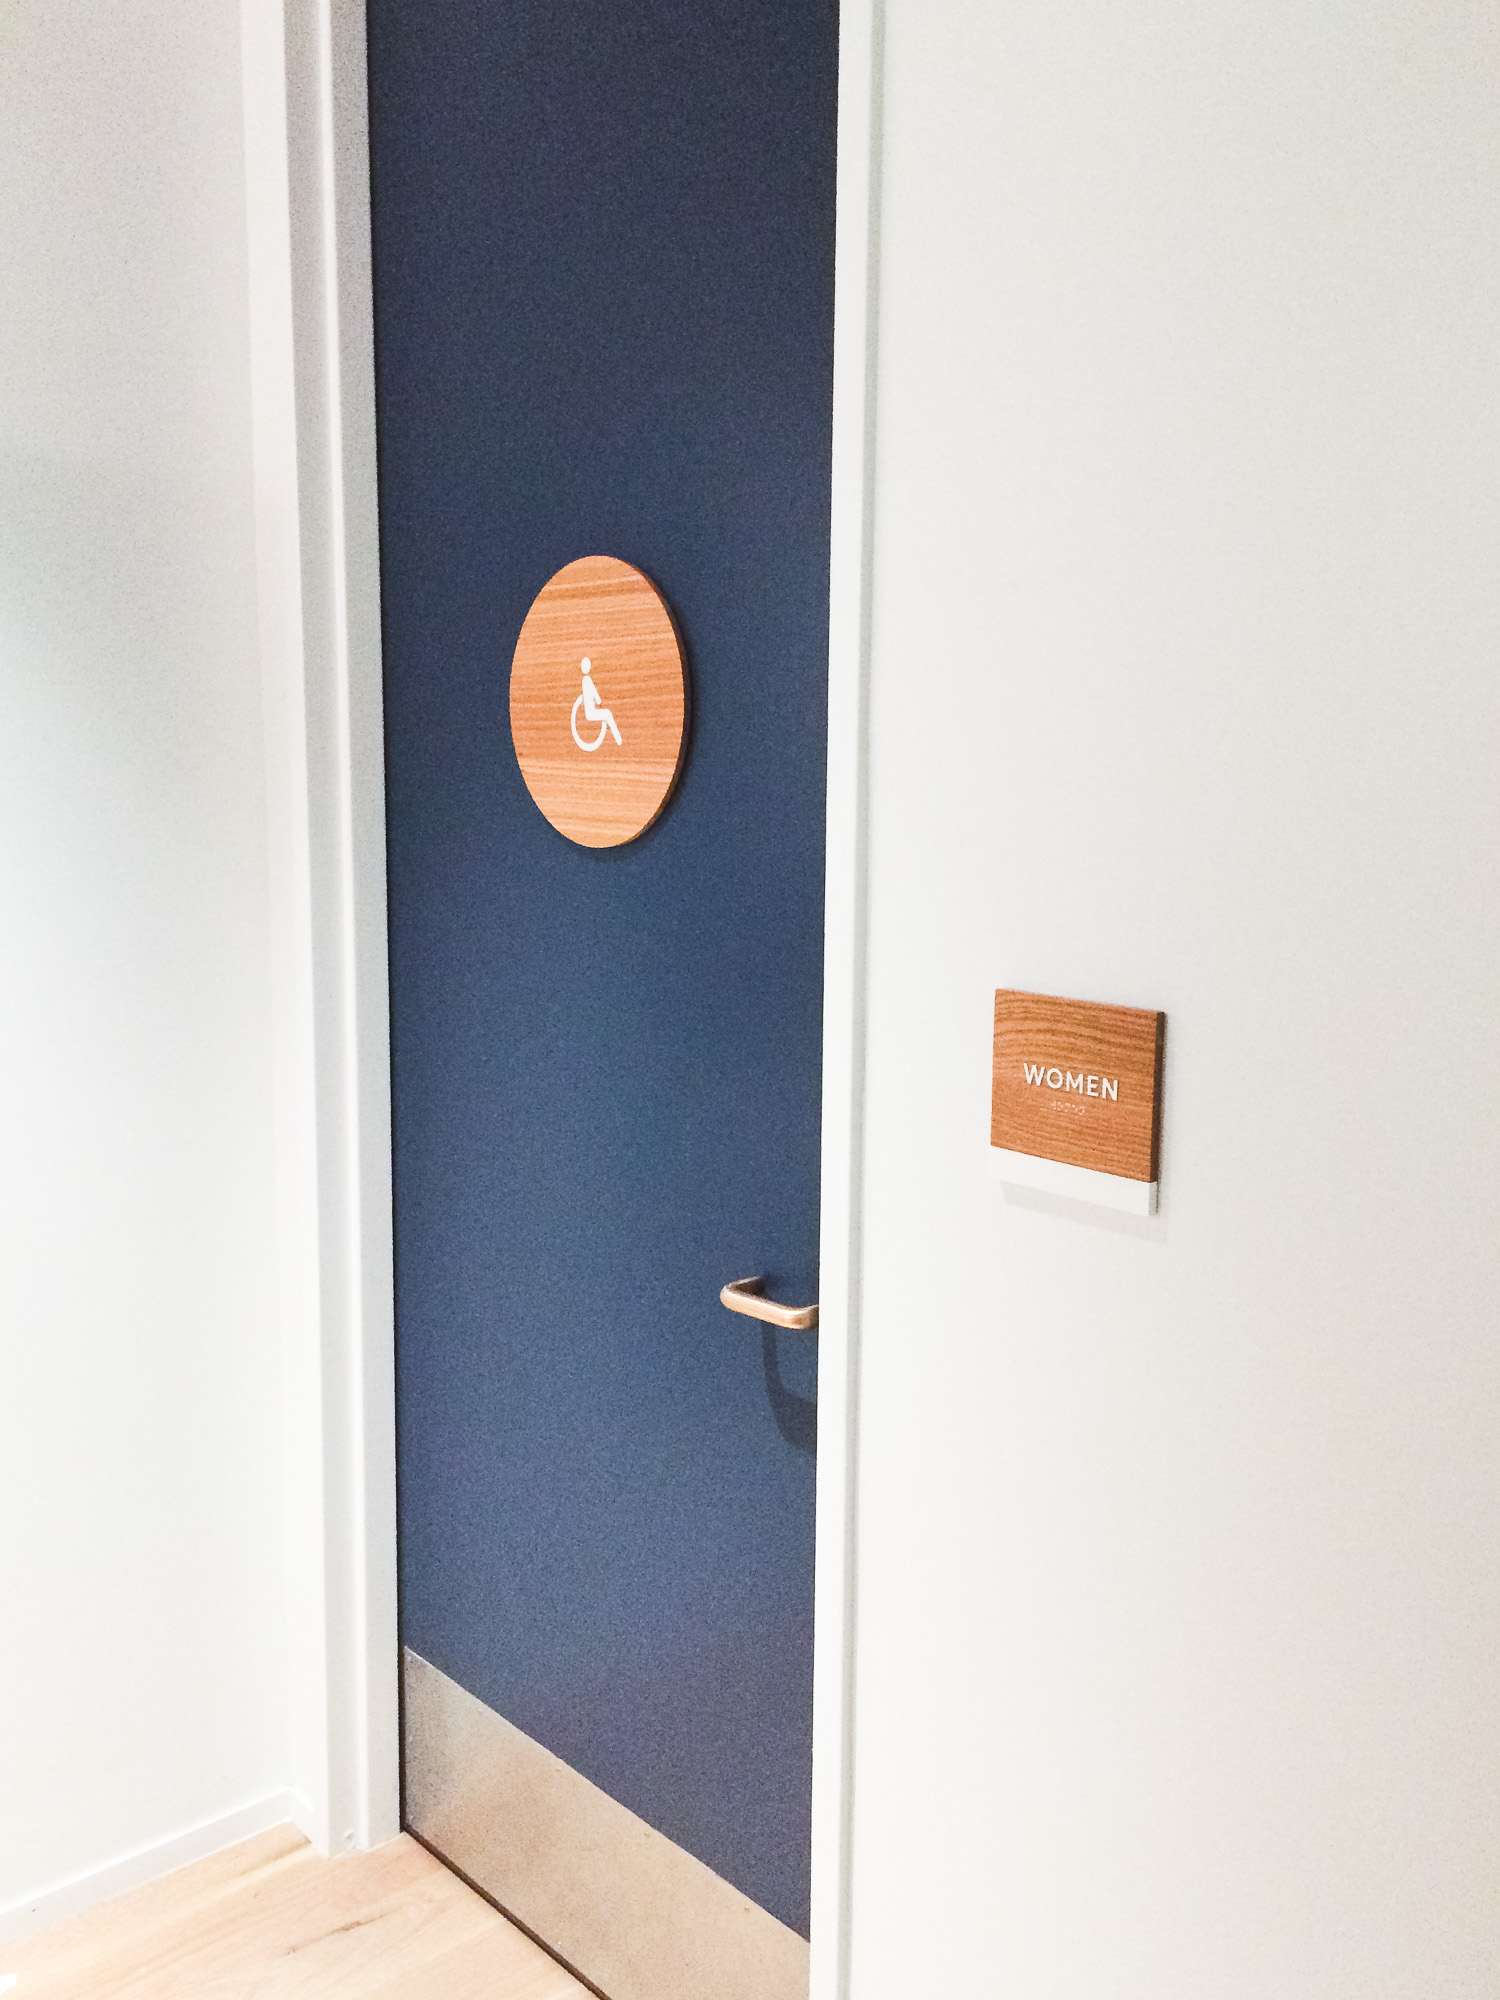 White-painted wood, California ADA signs for the office of Slack, a cloud-based set of proprietary team collaboration tools and services.